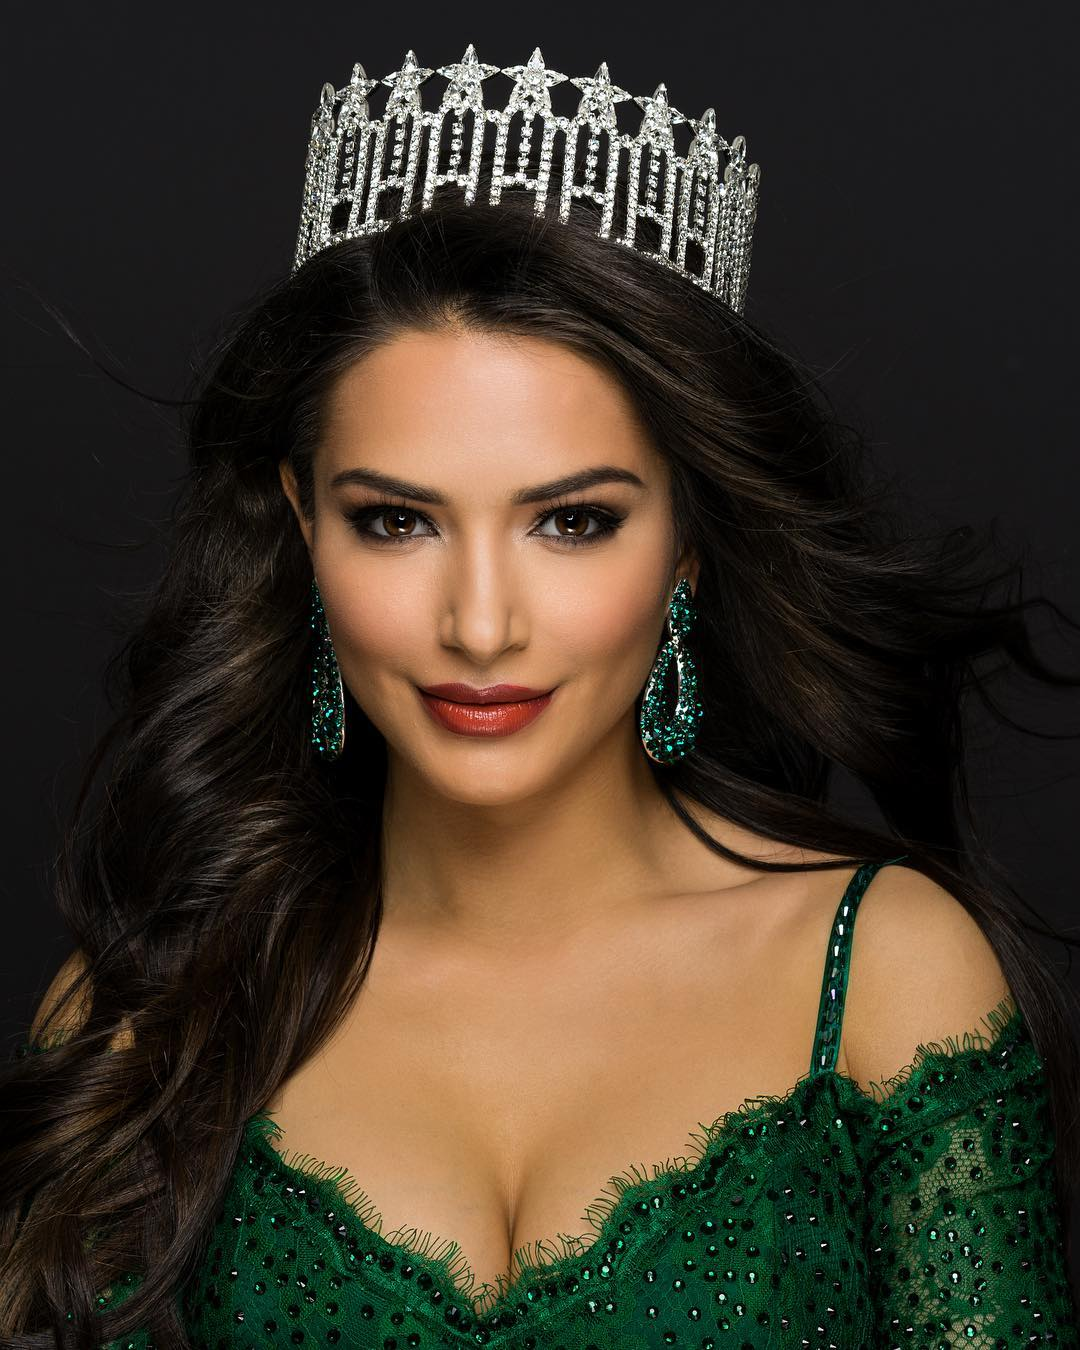 candidatas a miss usa 2019. final: 2 may. - Página 10 6zisx2p9